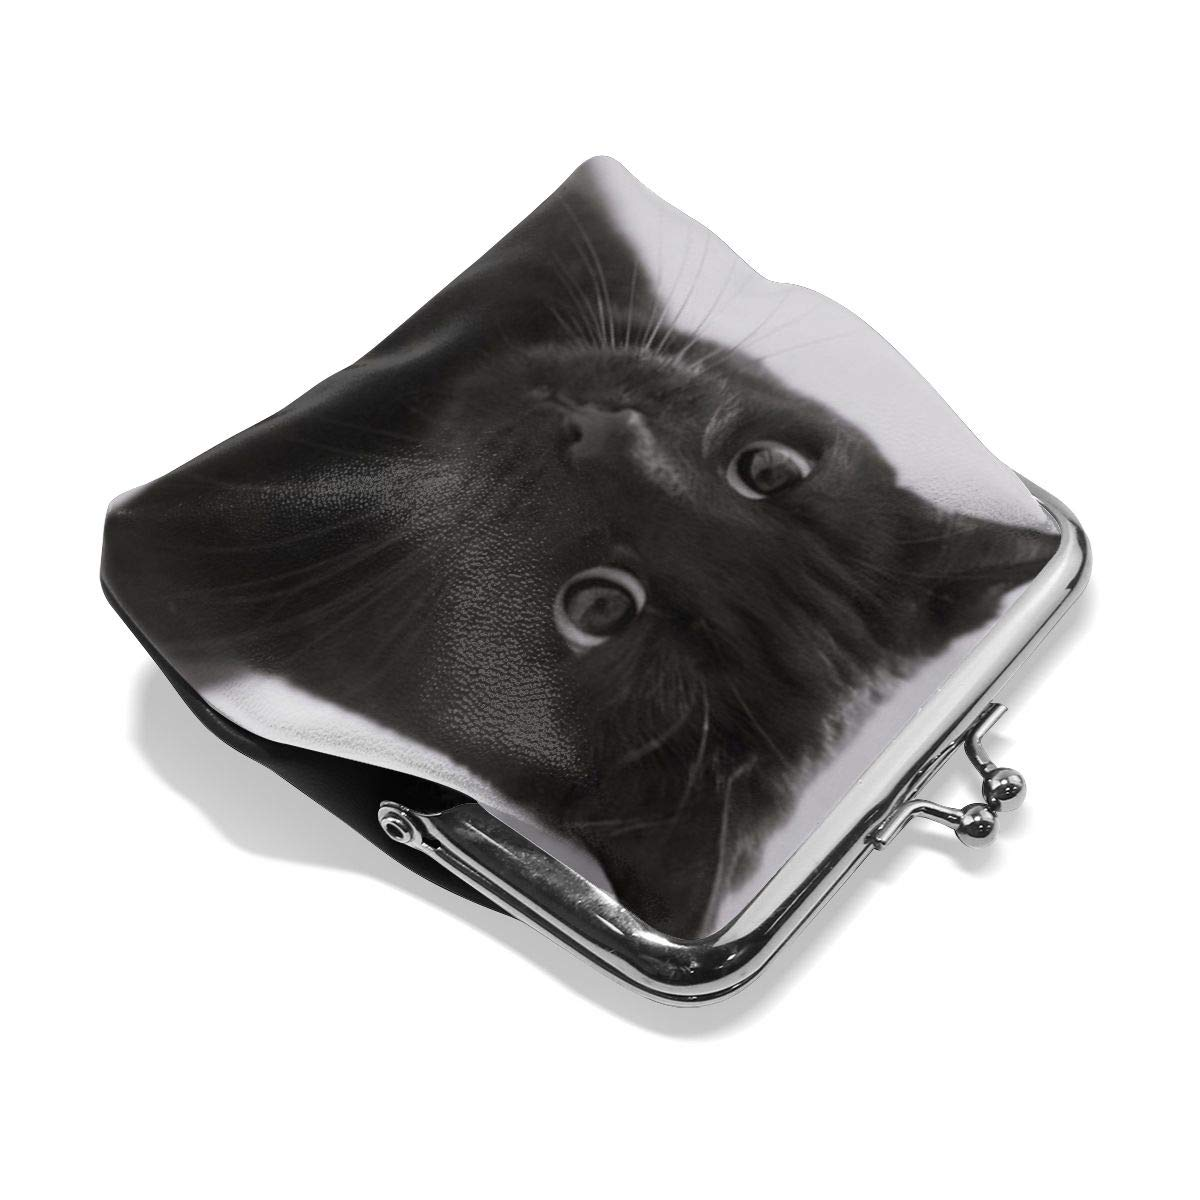 Yunshm Black Cat Personalized Retro Leather Cute Classic Floral Coin Purse Clutch Pouch Wallet For Girls And Womens